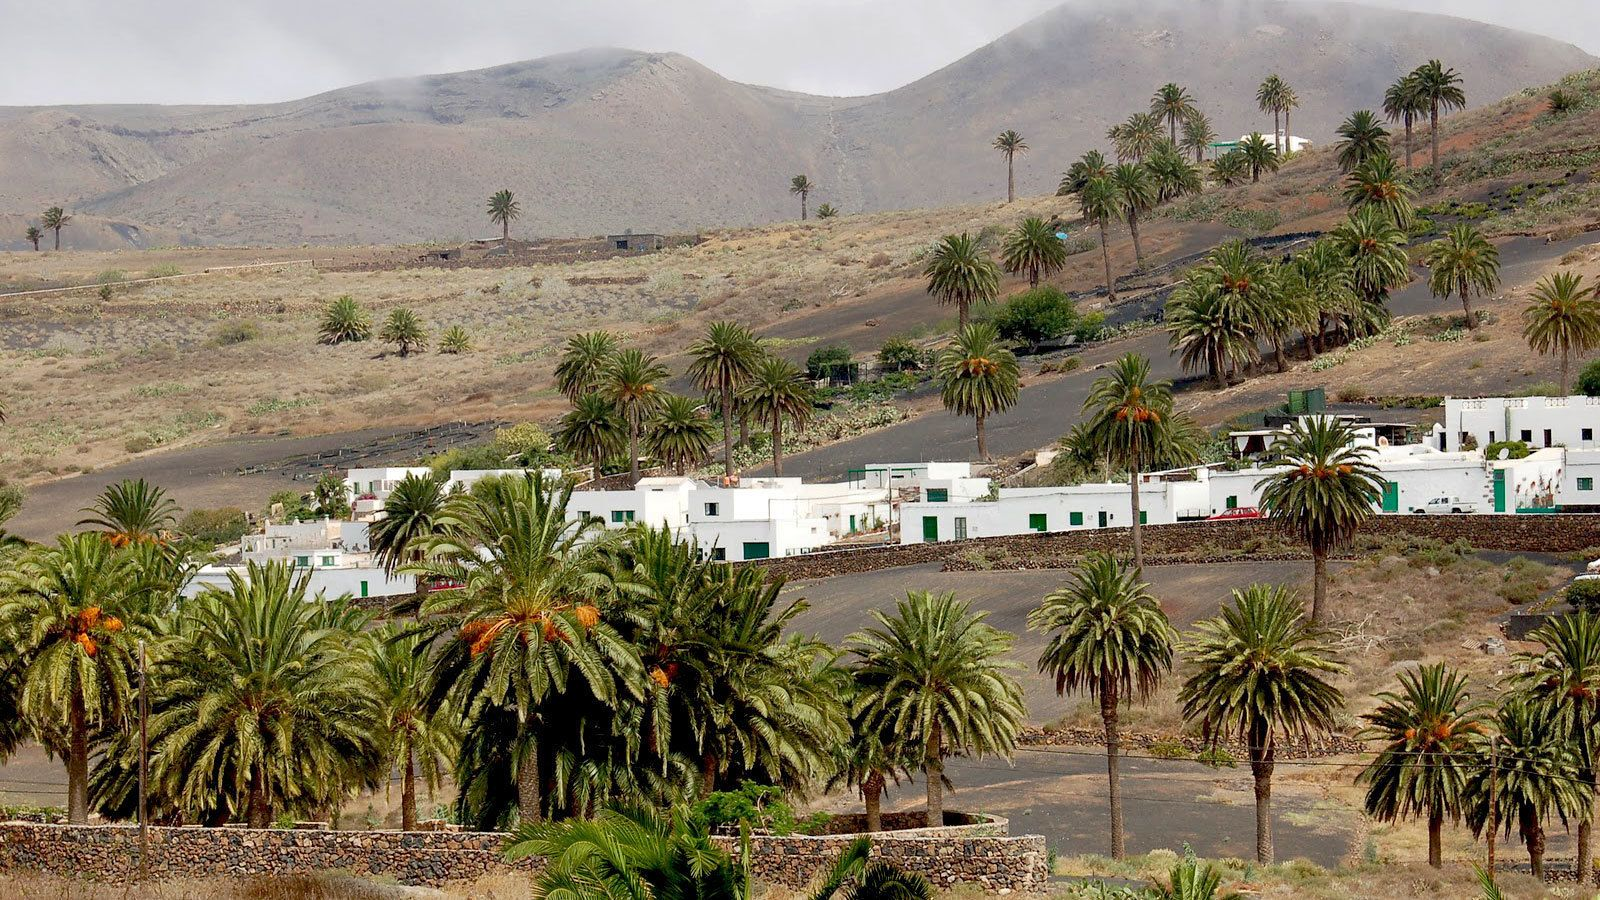 White-washed buildings and palm trees in Gran Canaria